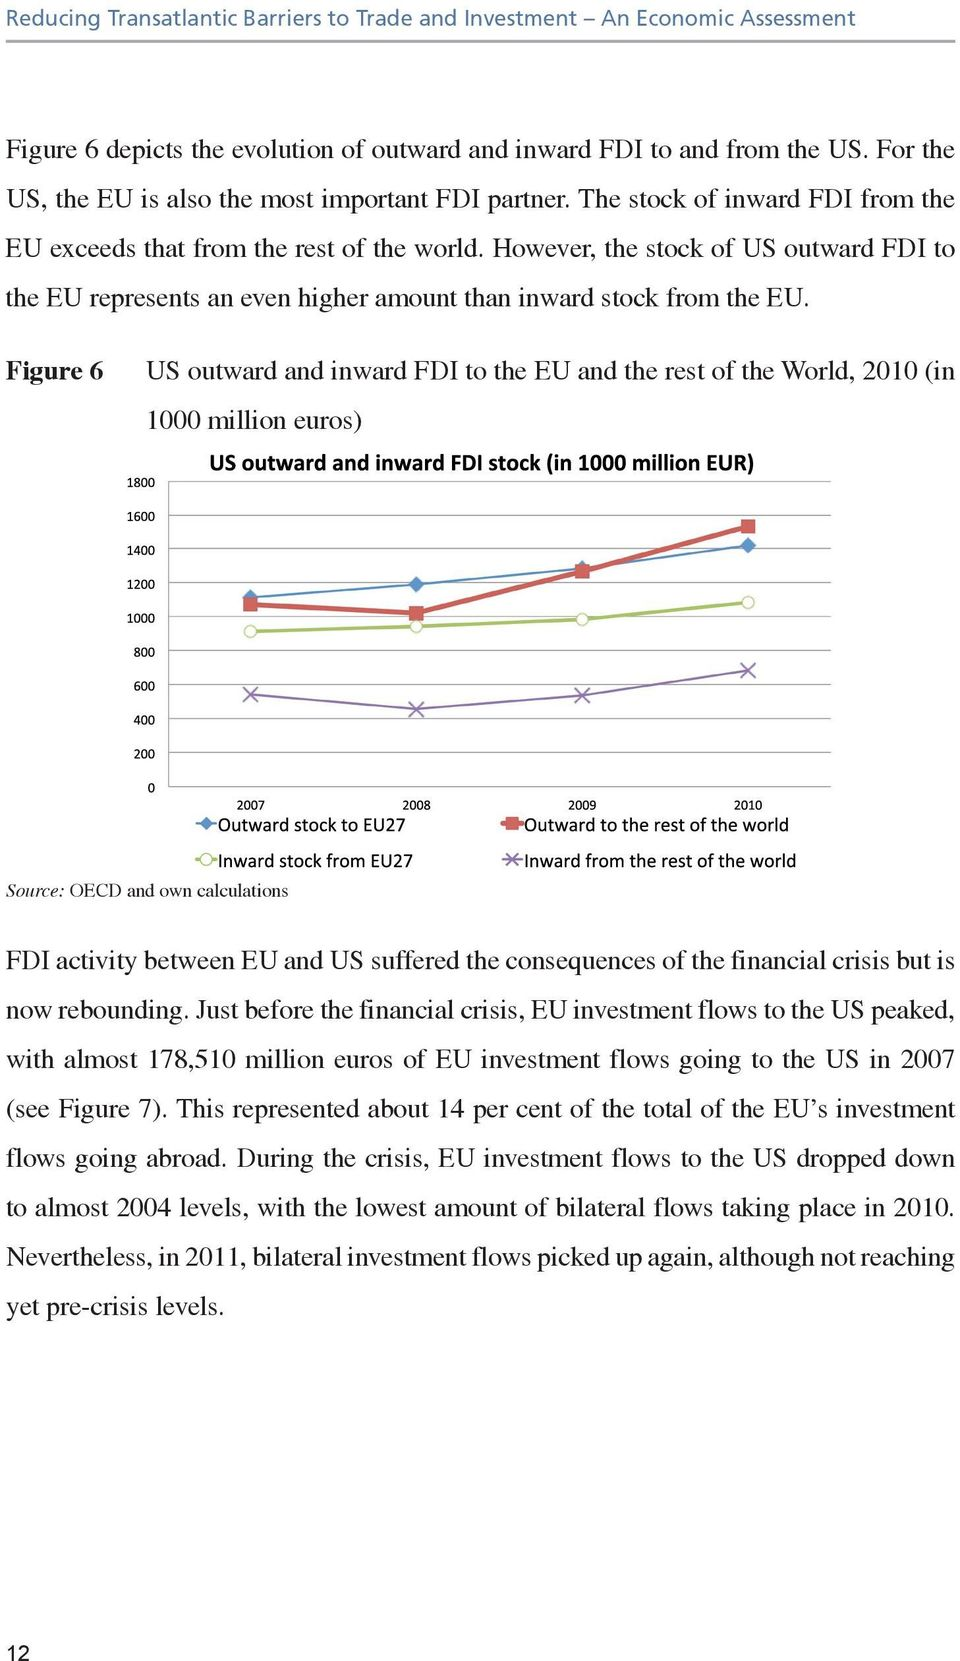 However, the stock of US outward FDI to the EU represents an even higher amount than inward stock from the EU.